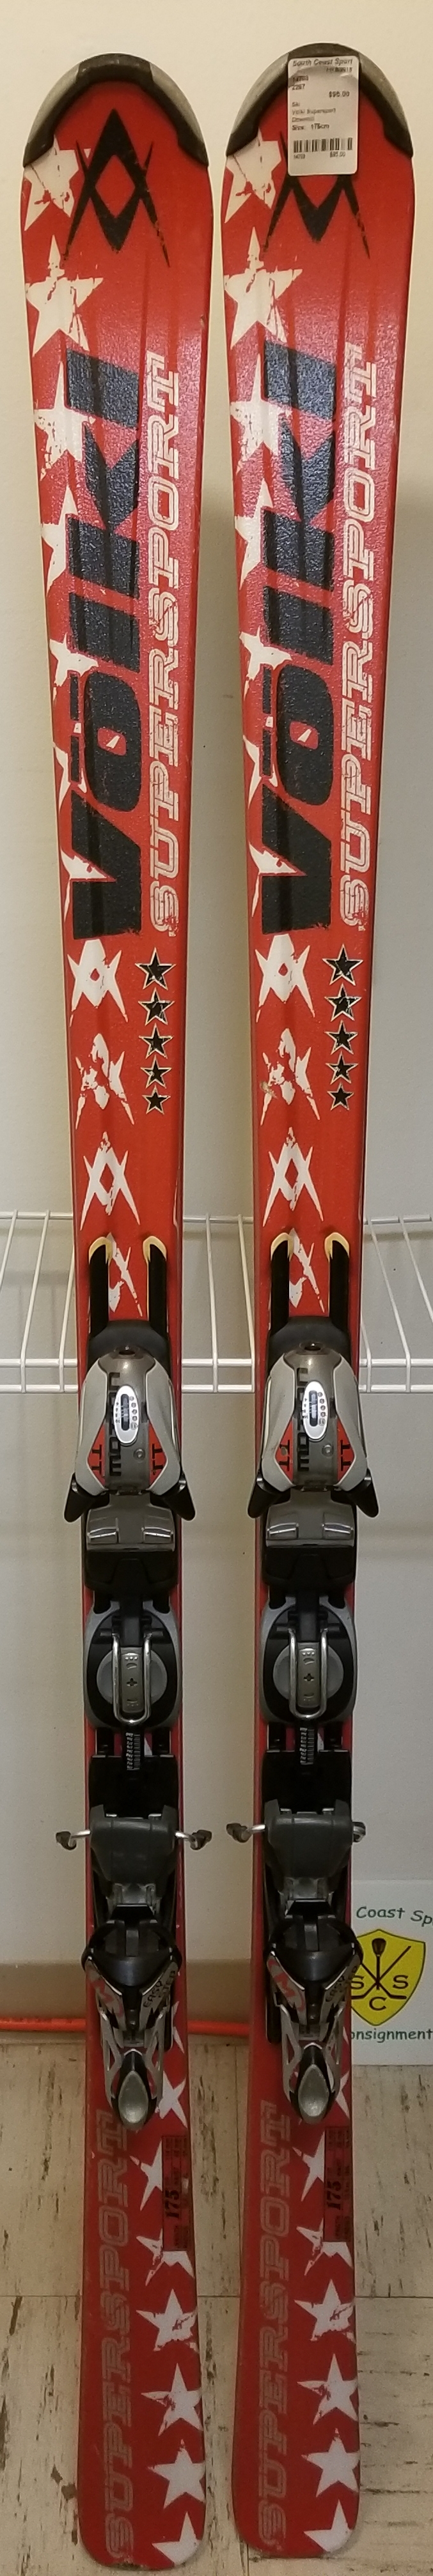 Volkl Supersport skis, Downhill, Size: 175cm